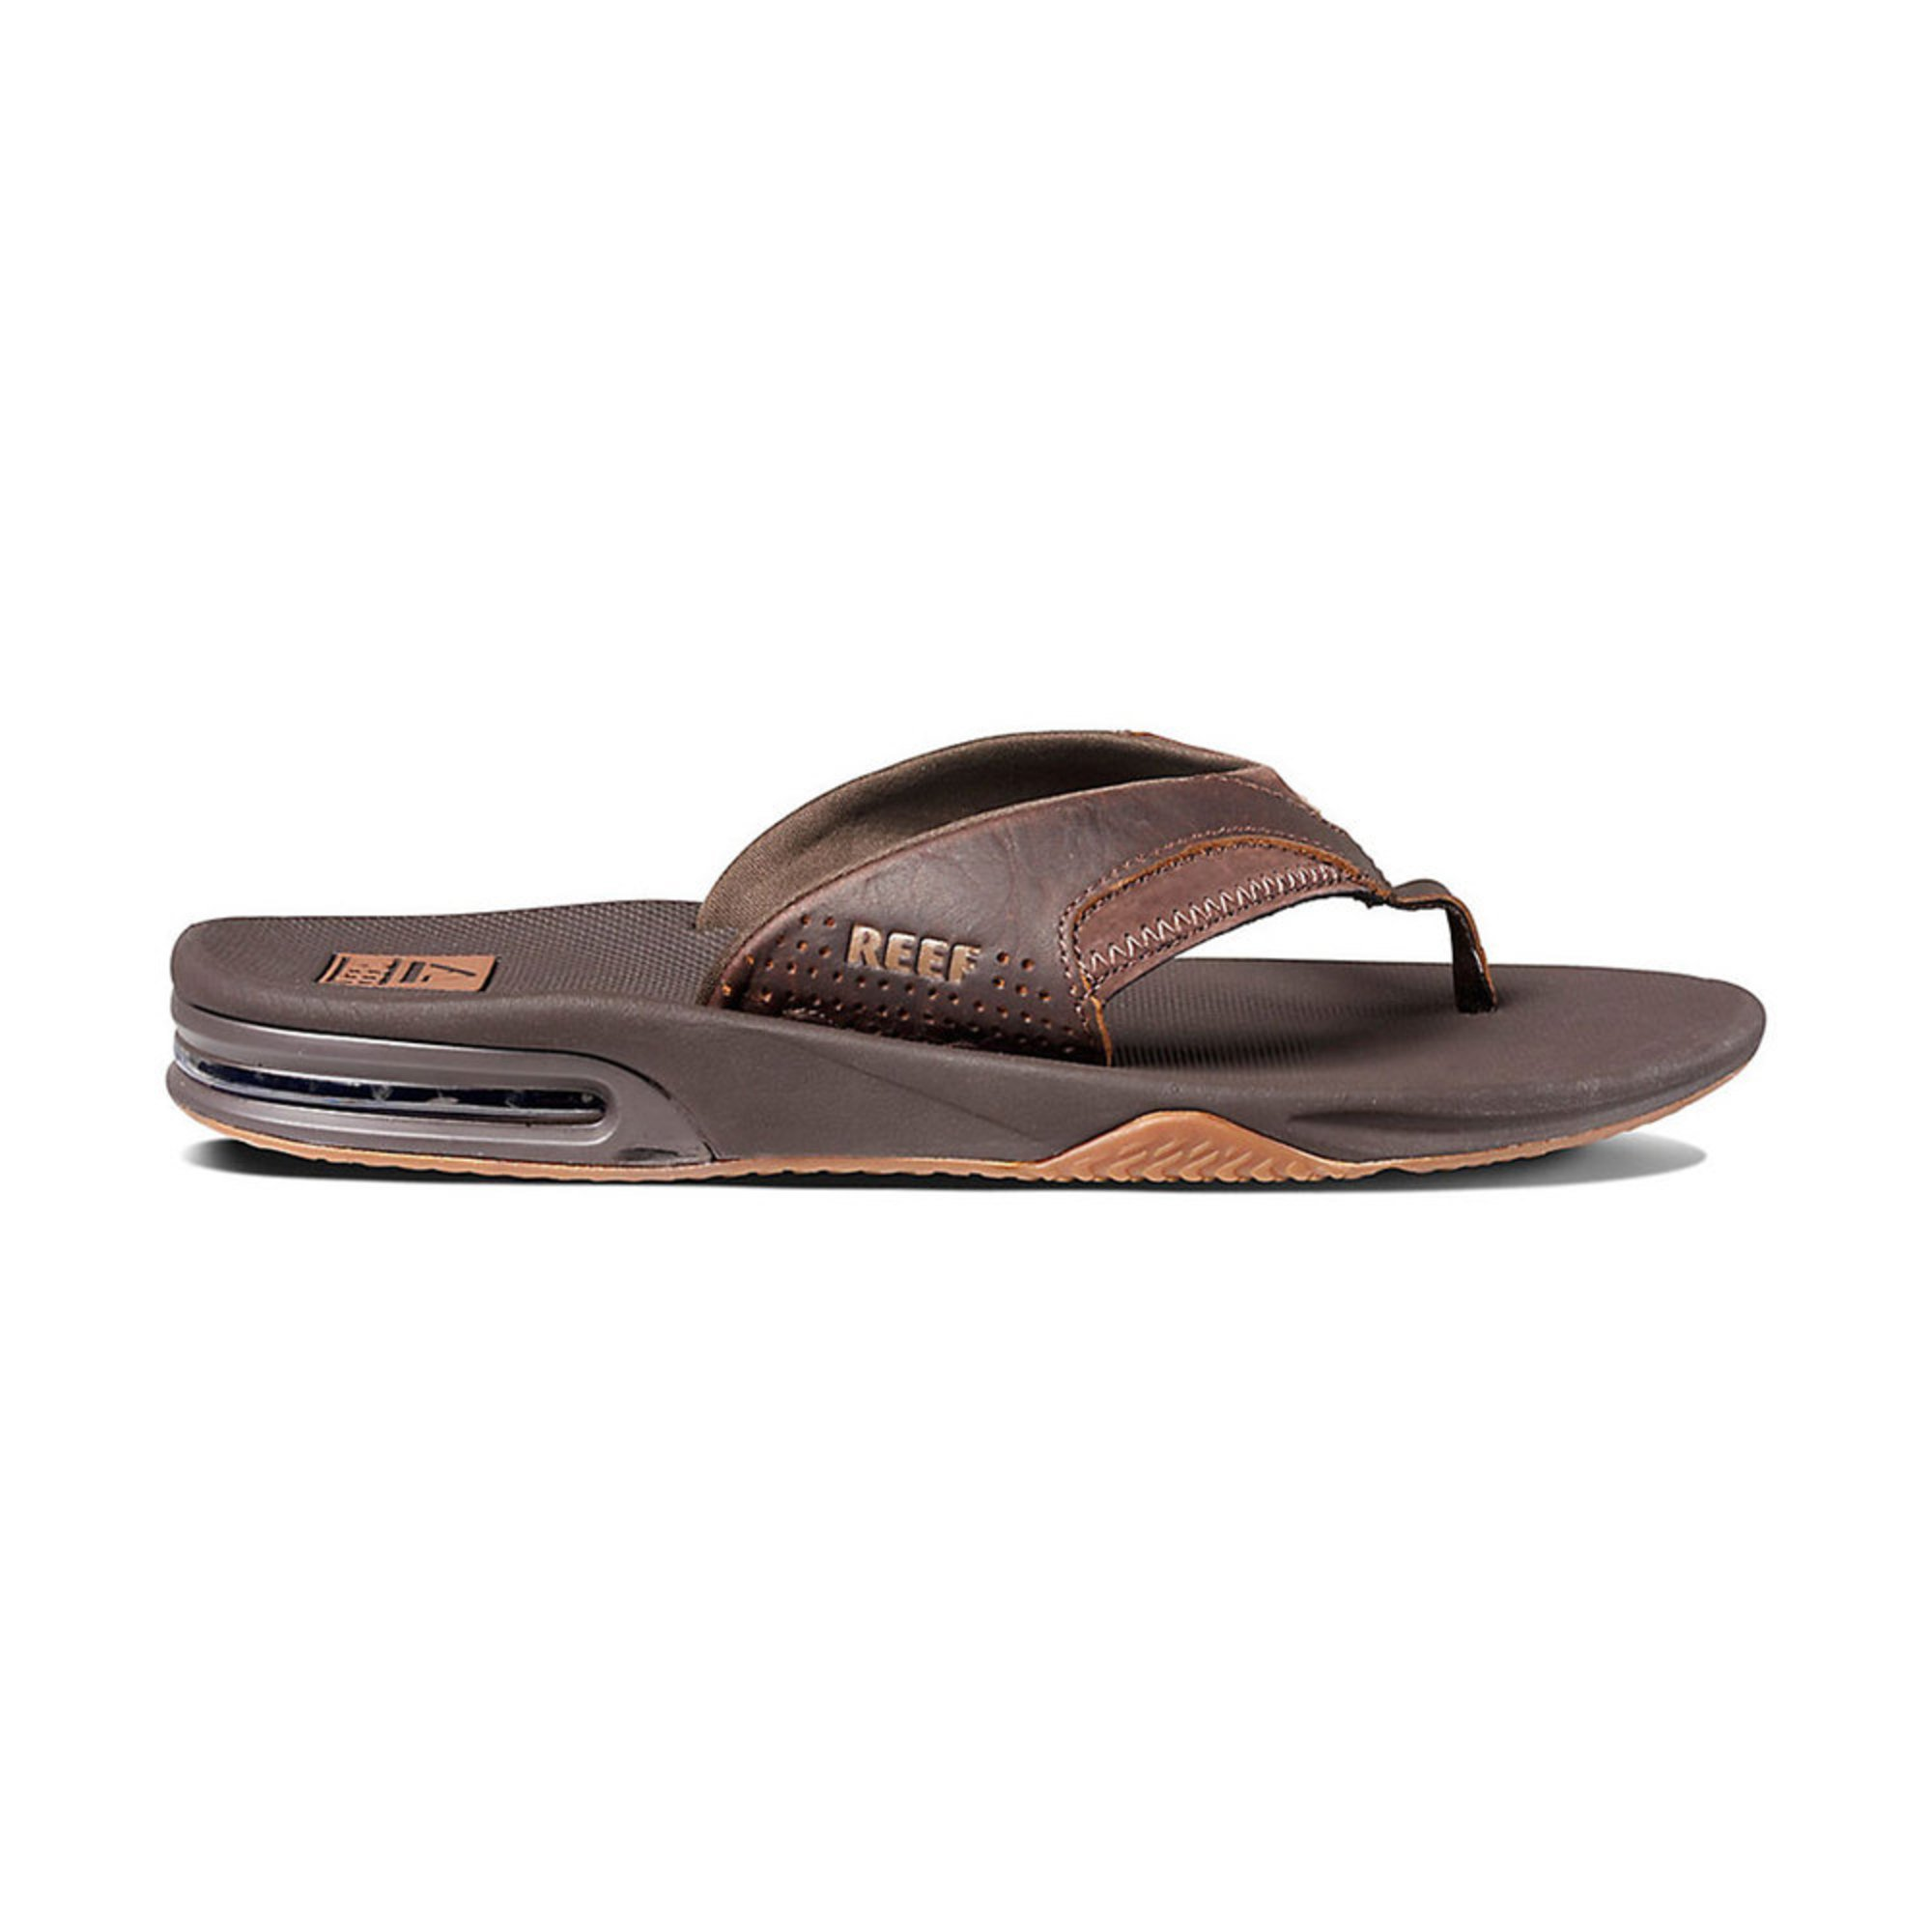 773adeabcc8 Reef. Reef Men s Leather Fanning Sandal